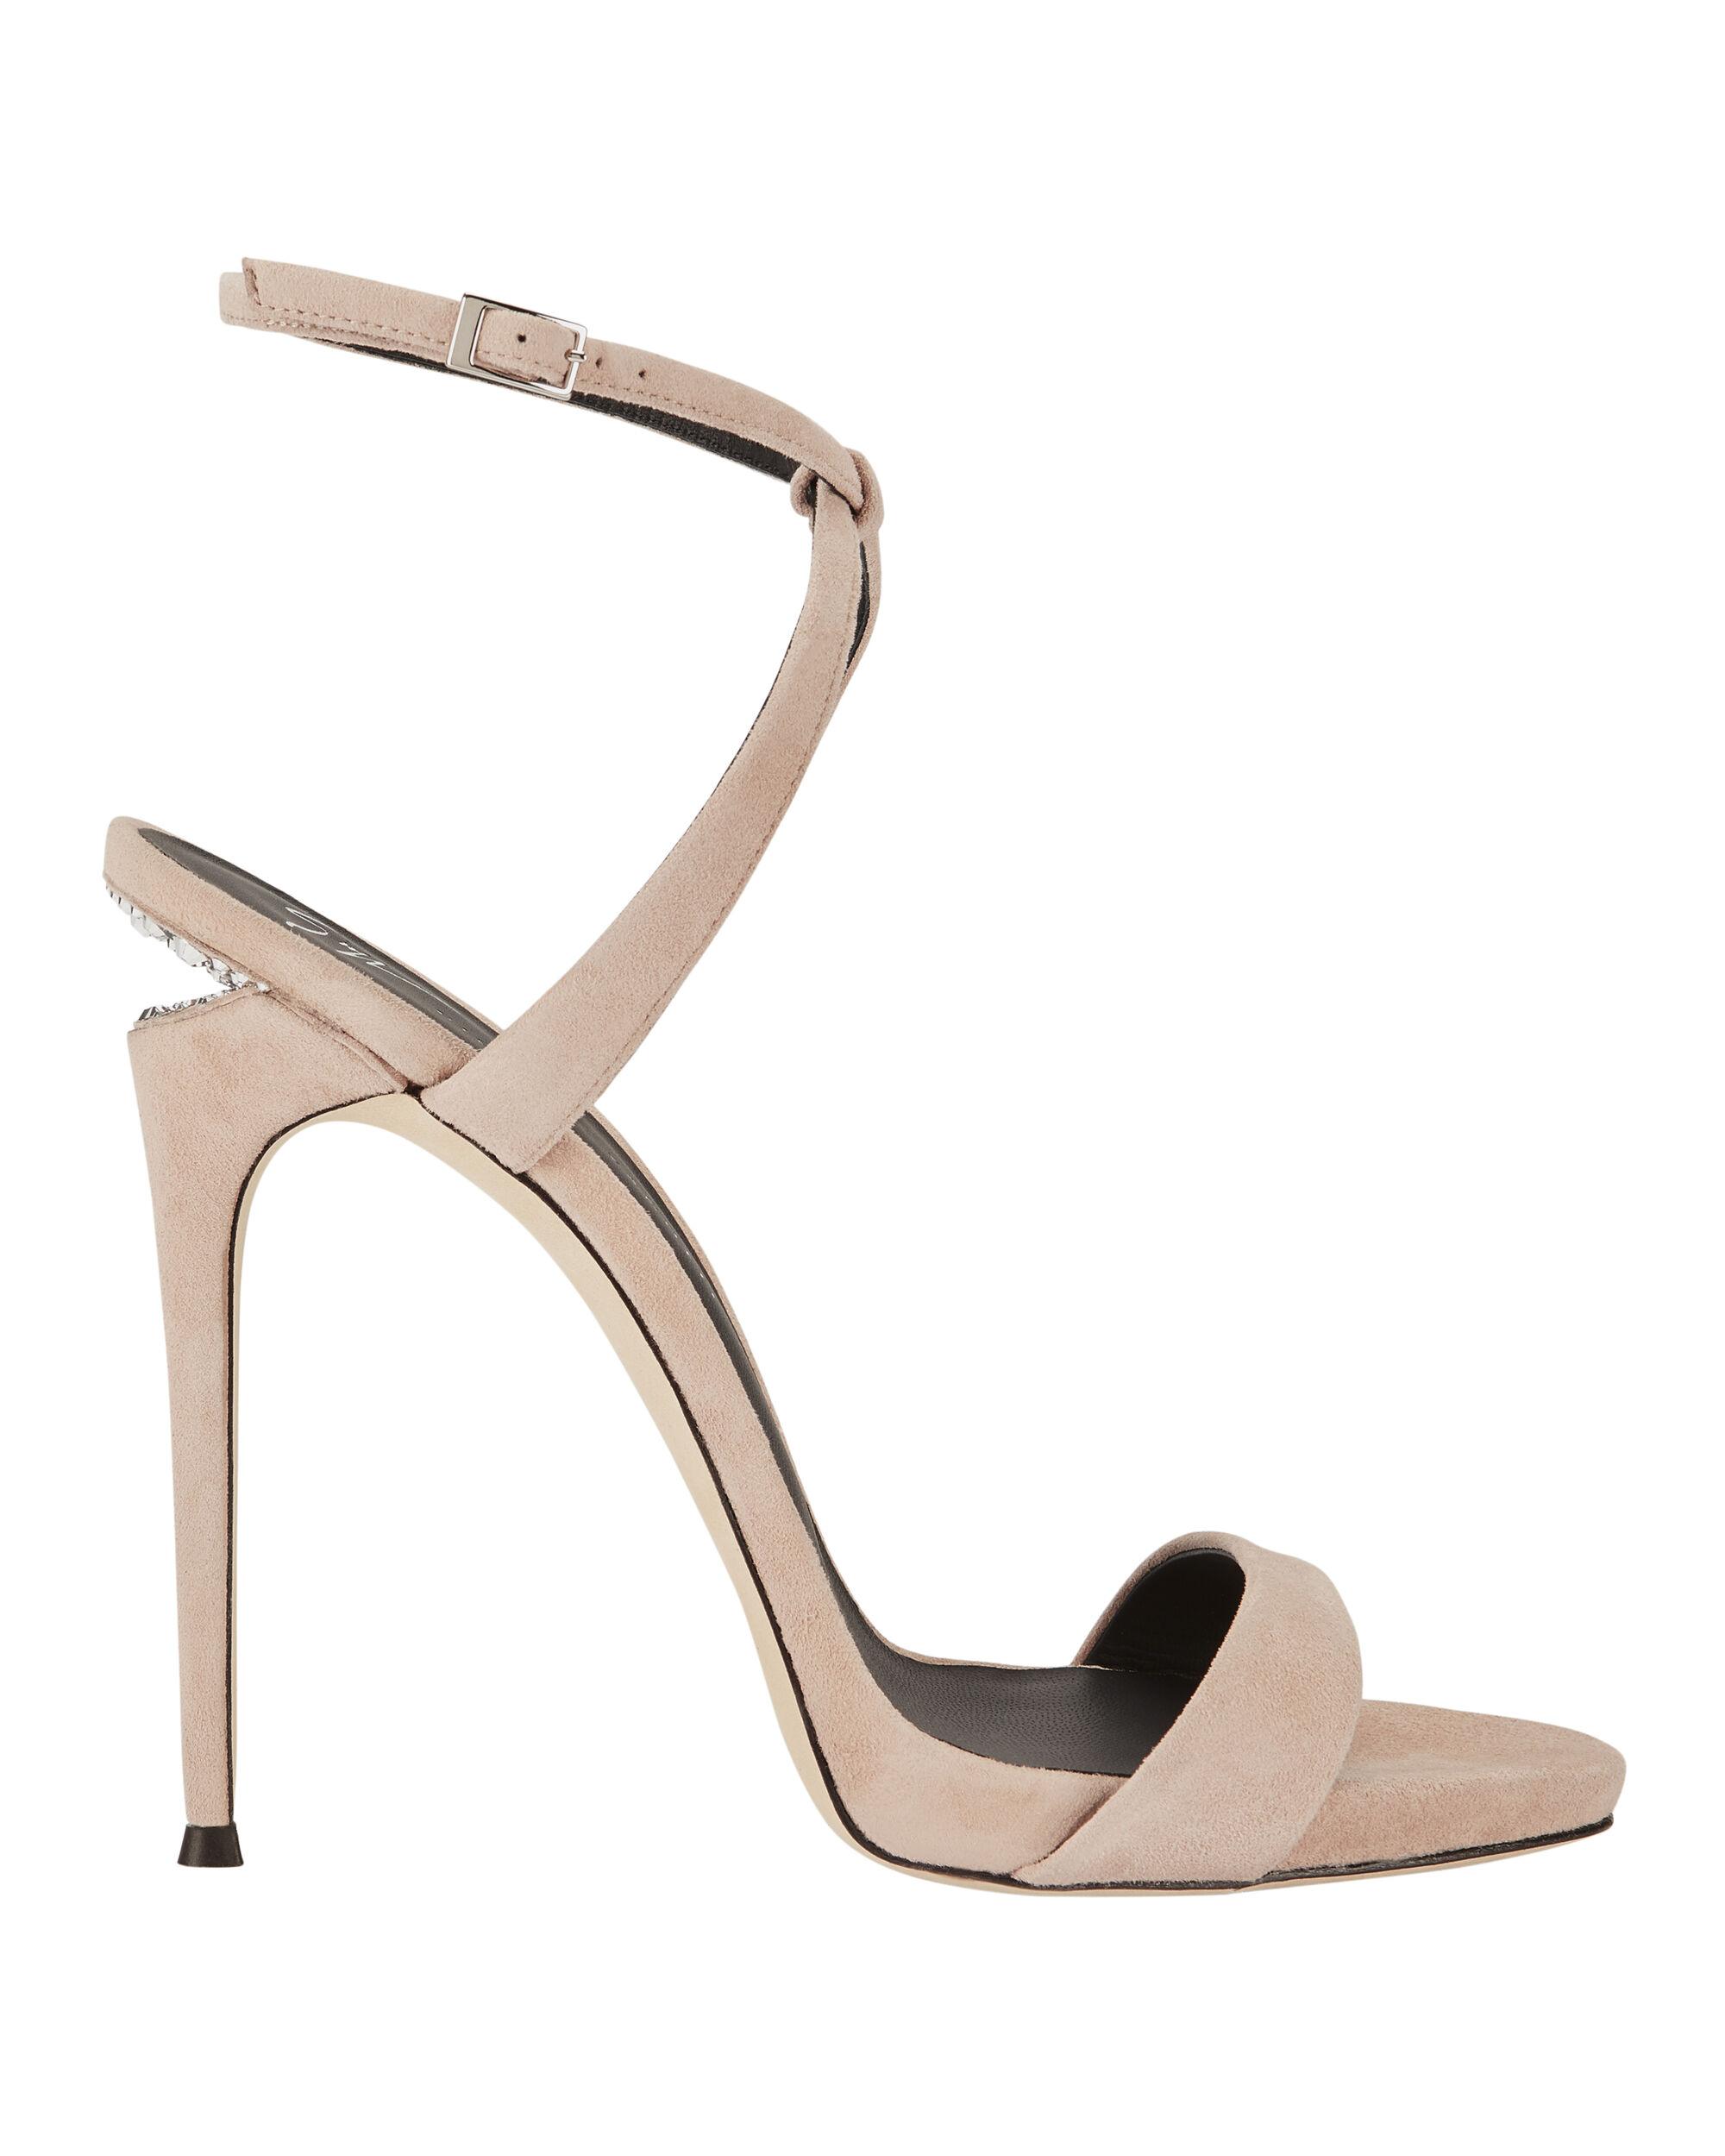 Coline Crystal Cutout Heel Sandals, BLUSH/NUDE, hi-res